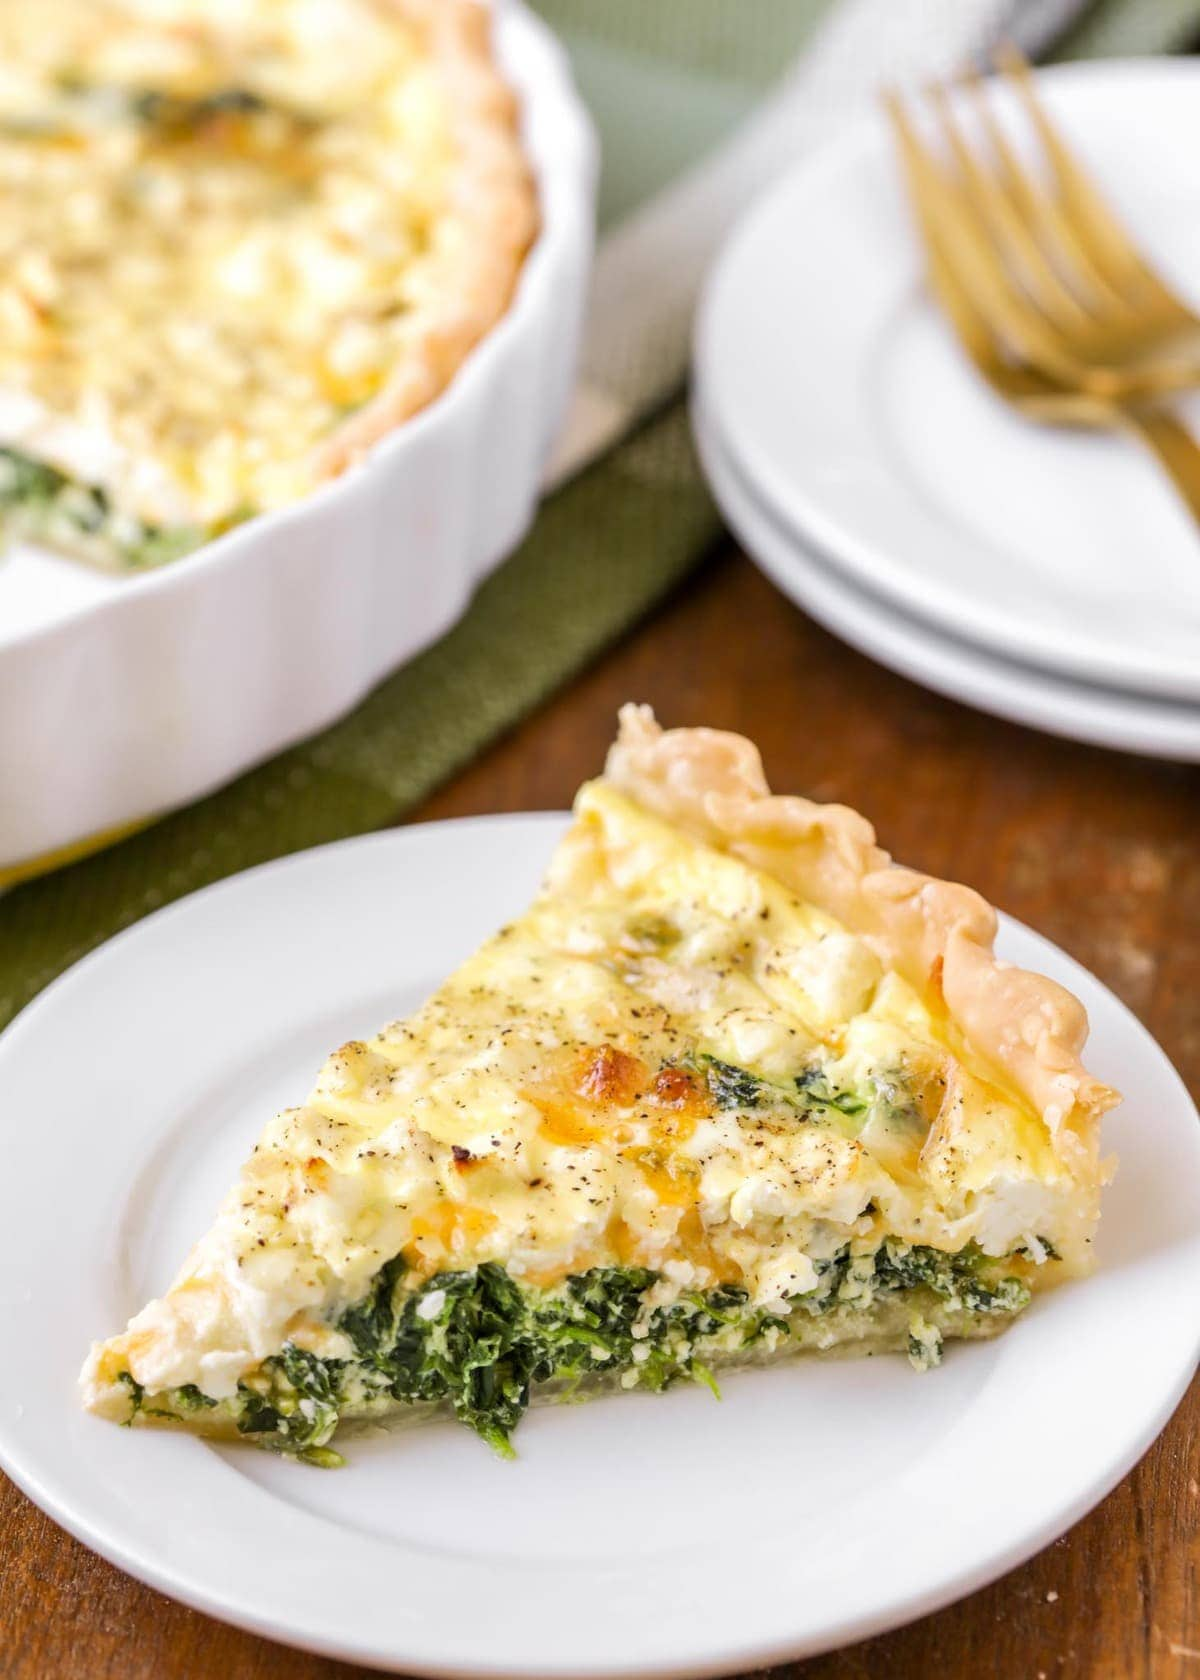 Spinach Quiche Recipe With Feta Cheese Lil Luna